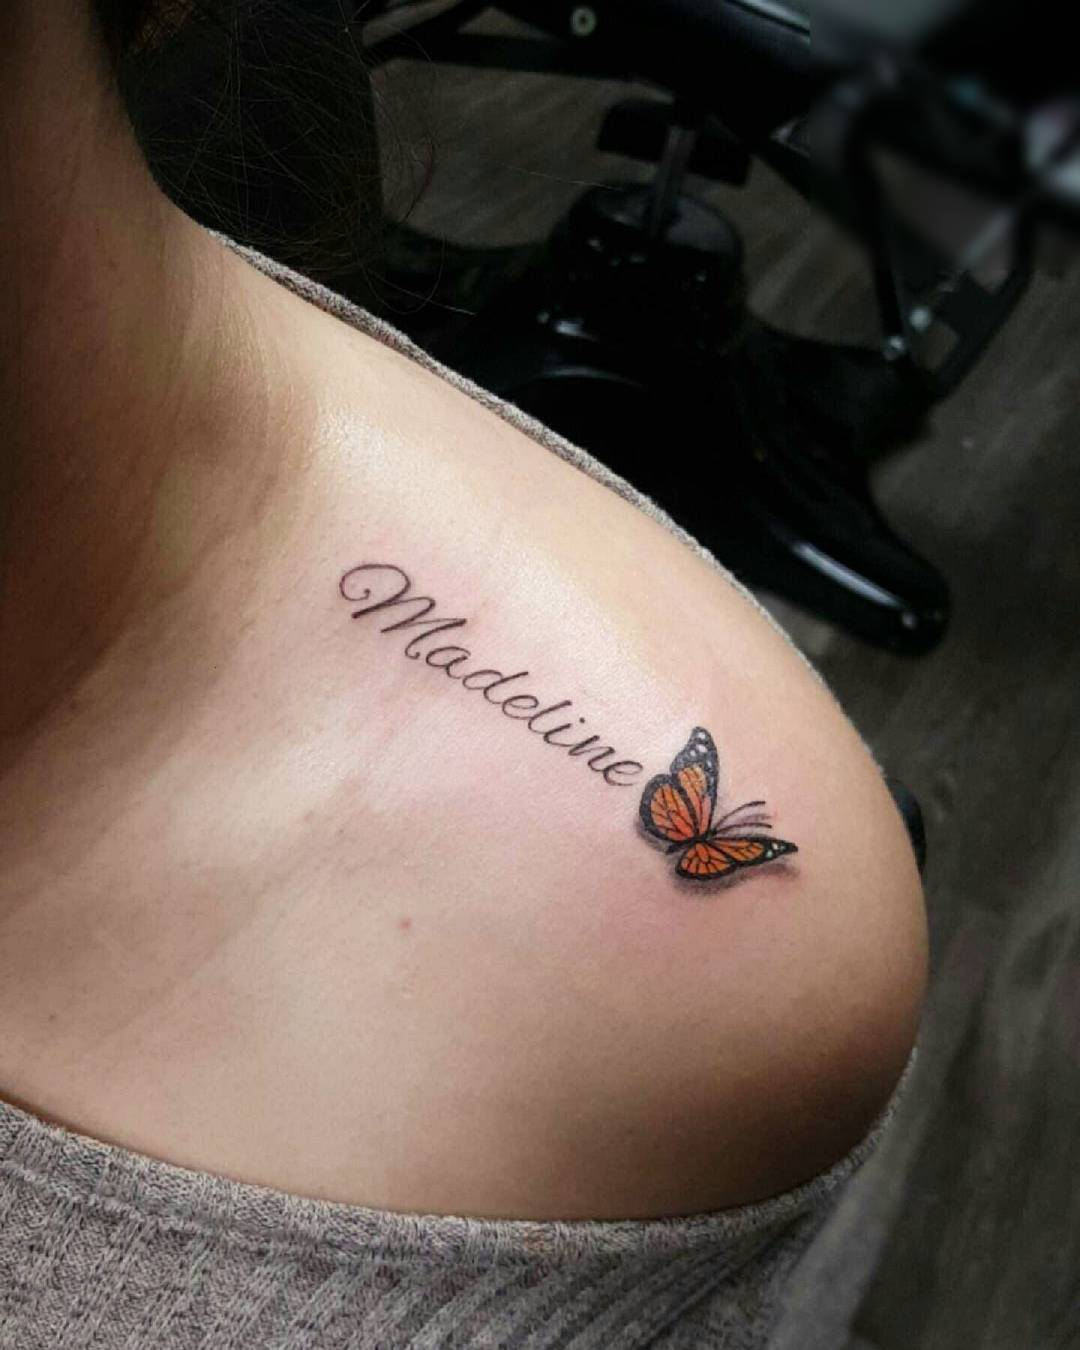 Tattoo Designs Girls: 110+ Cute And Tiny Tattoos For Girls